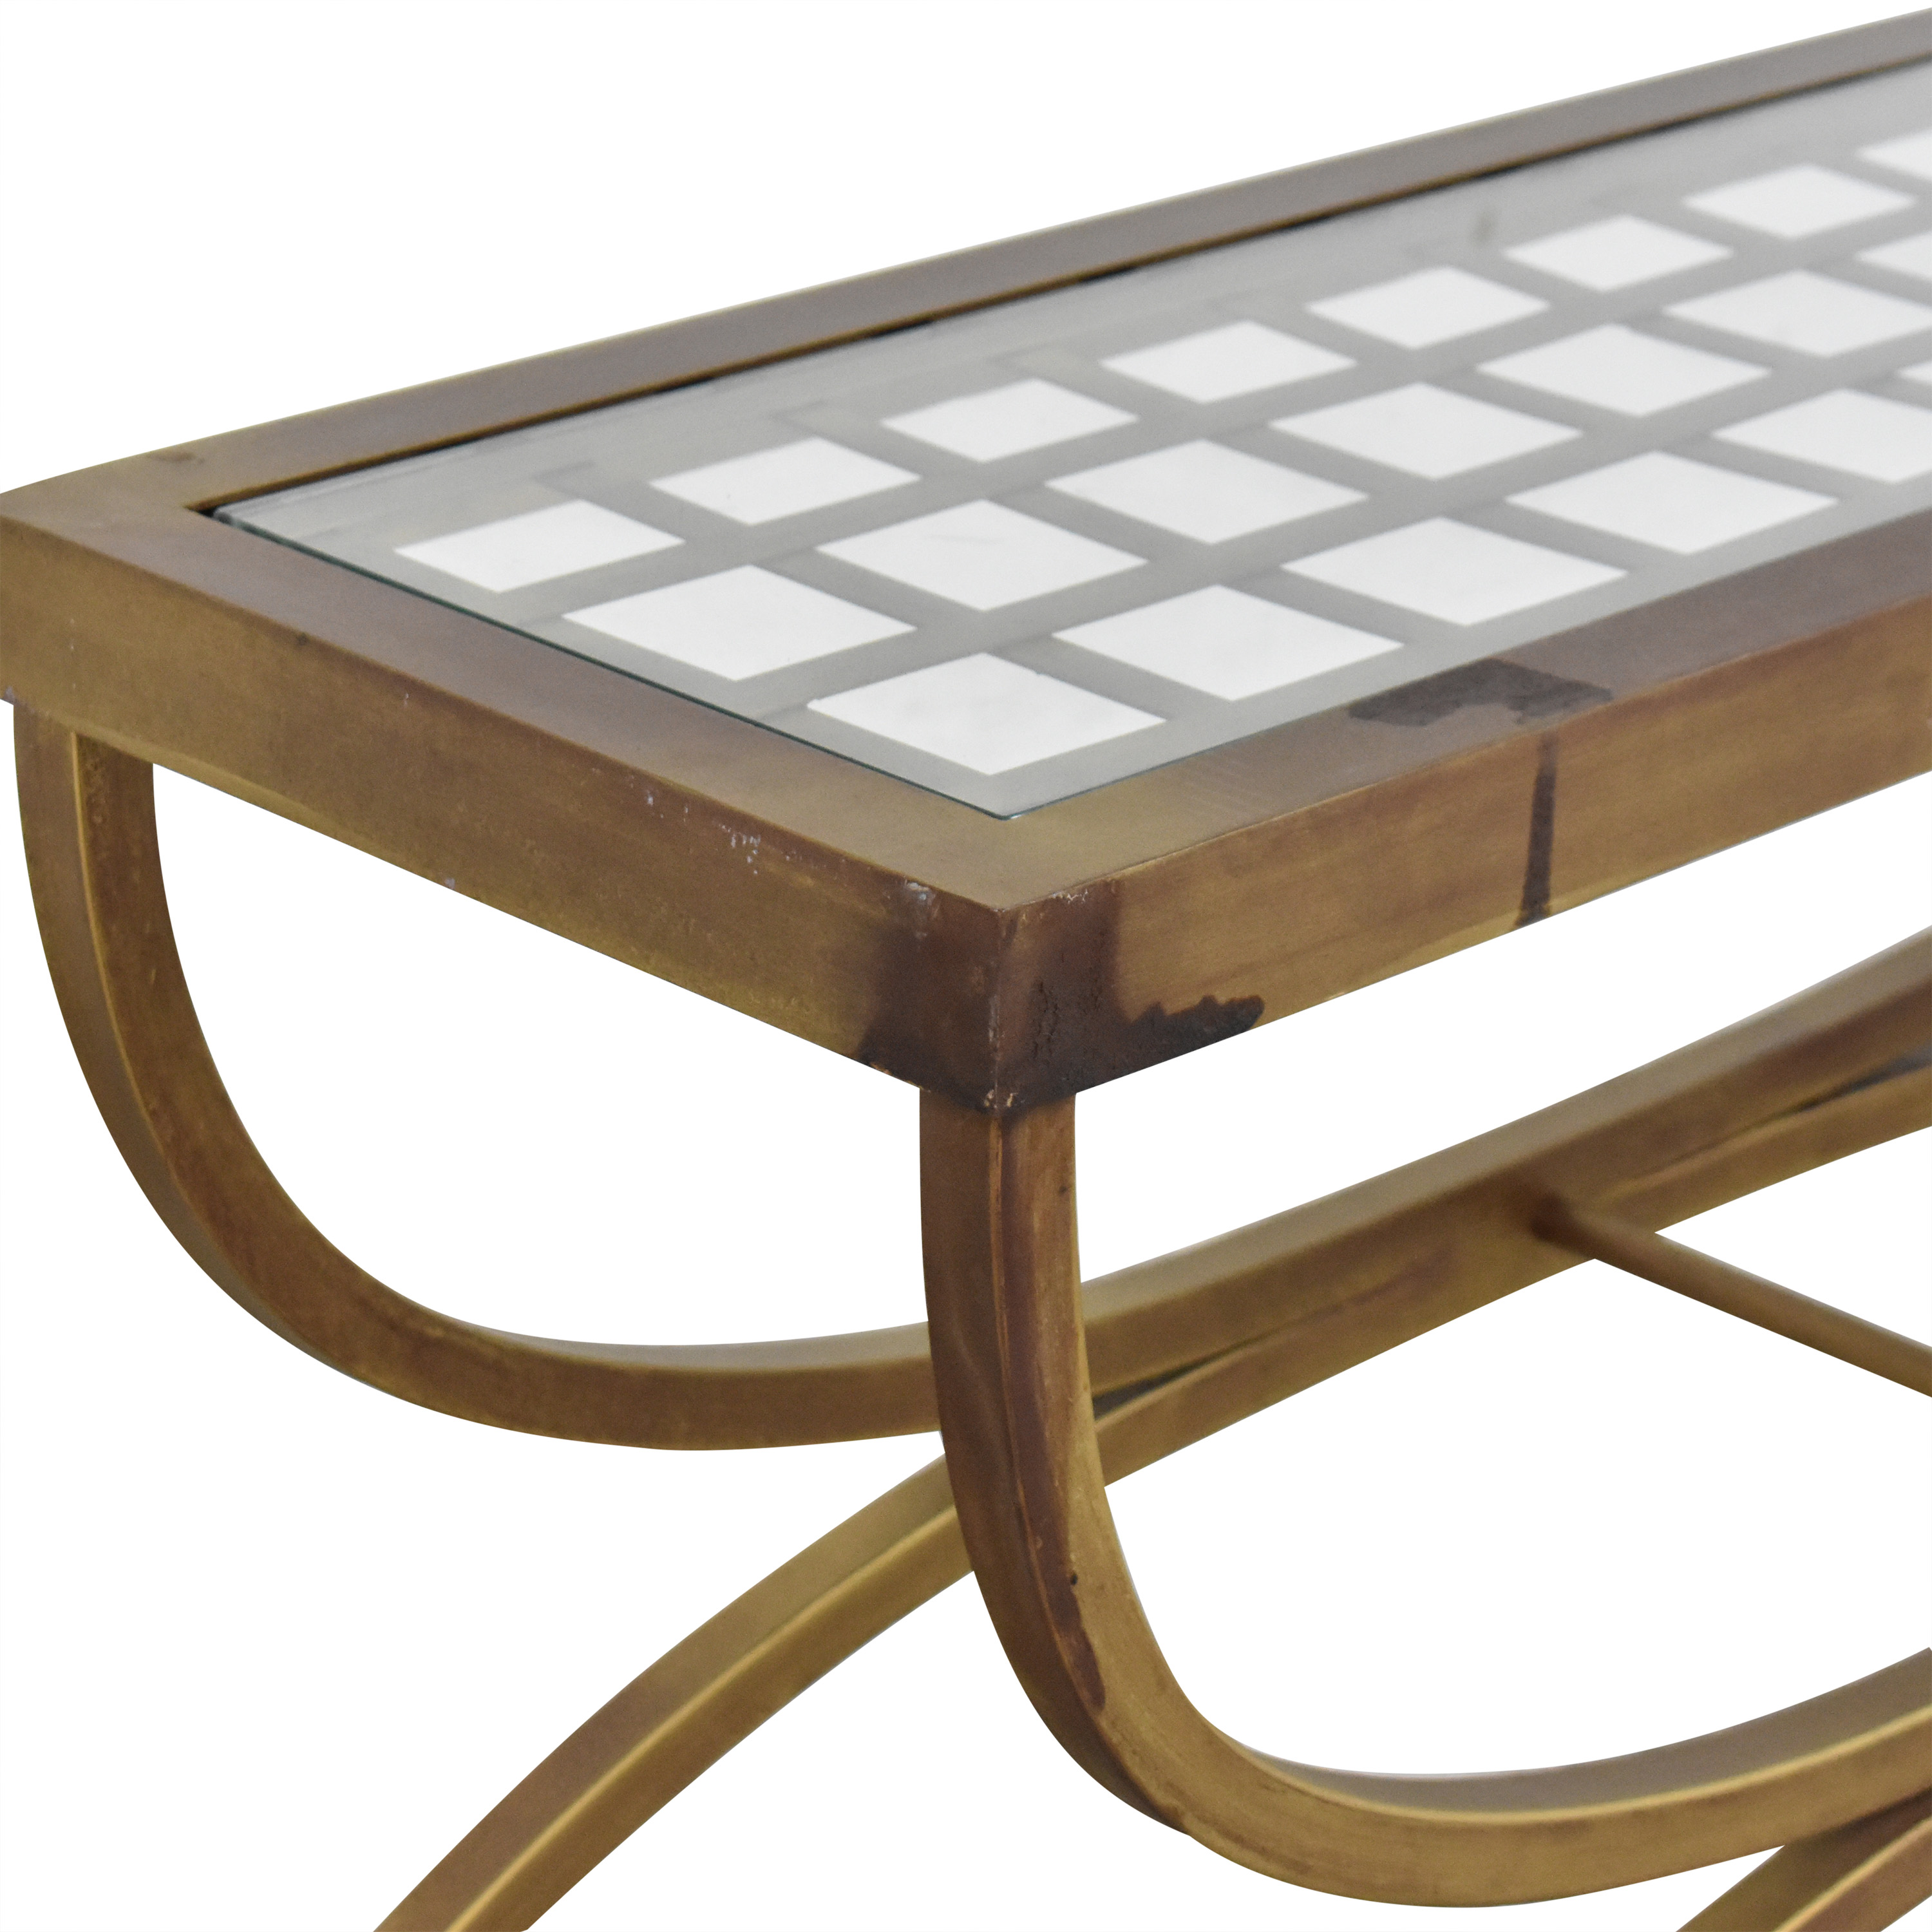 Bombay Company Bombay Company End Table with Translucent Surface nyc